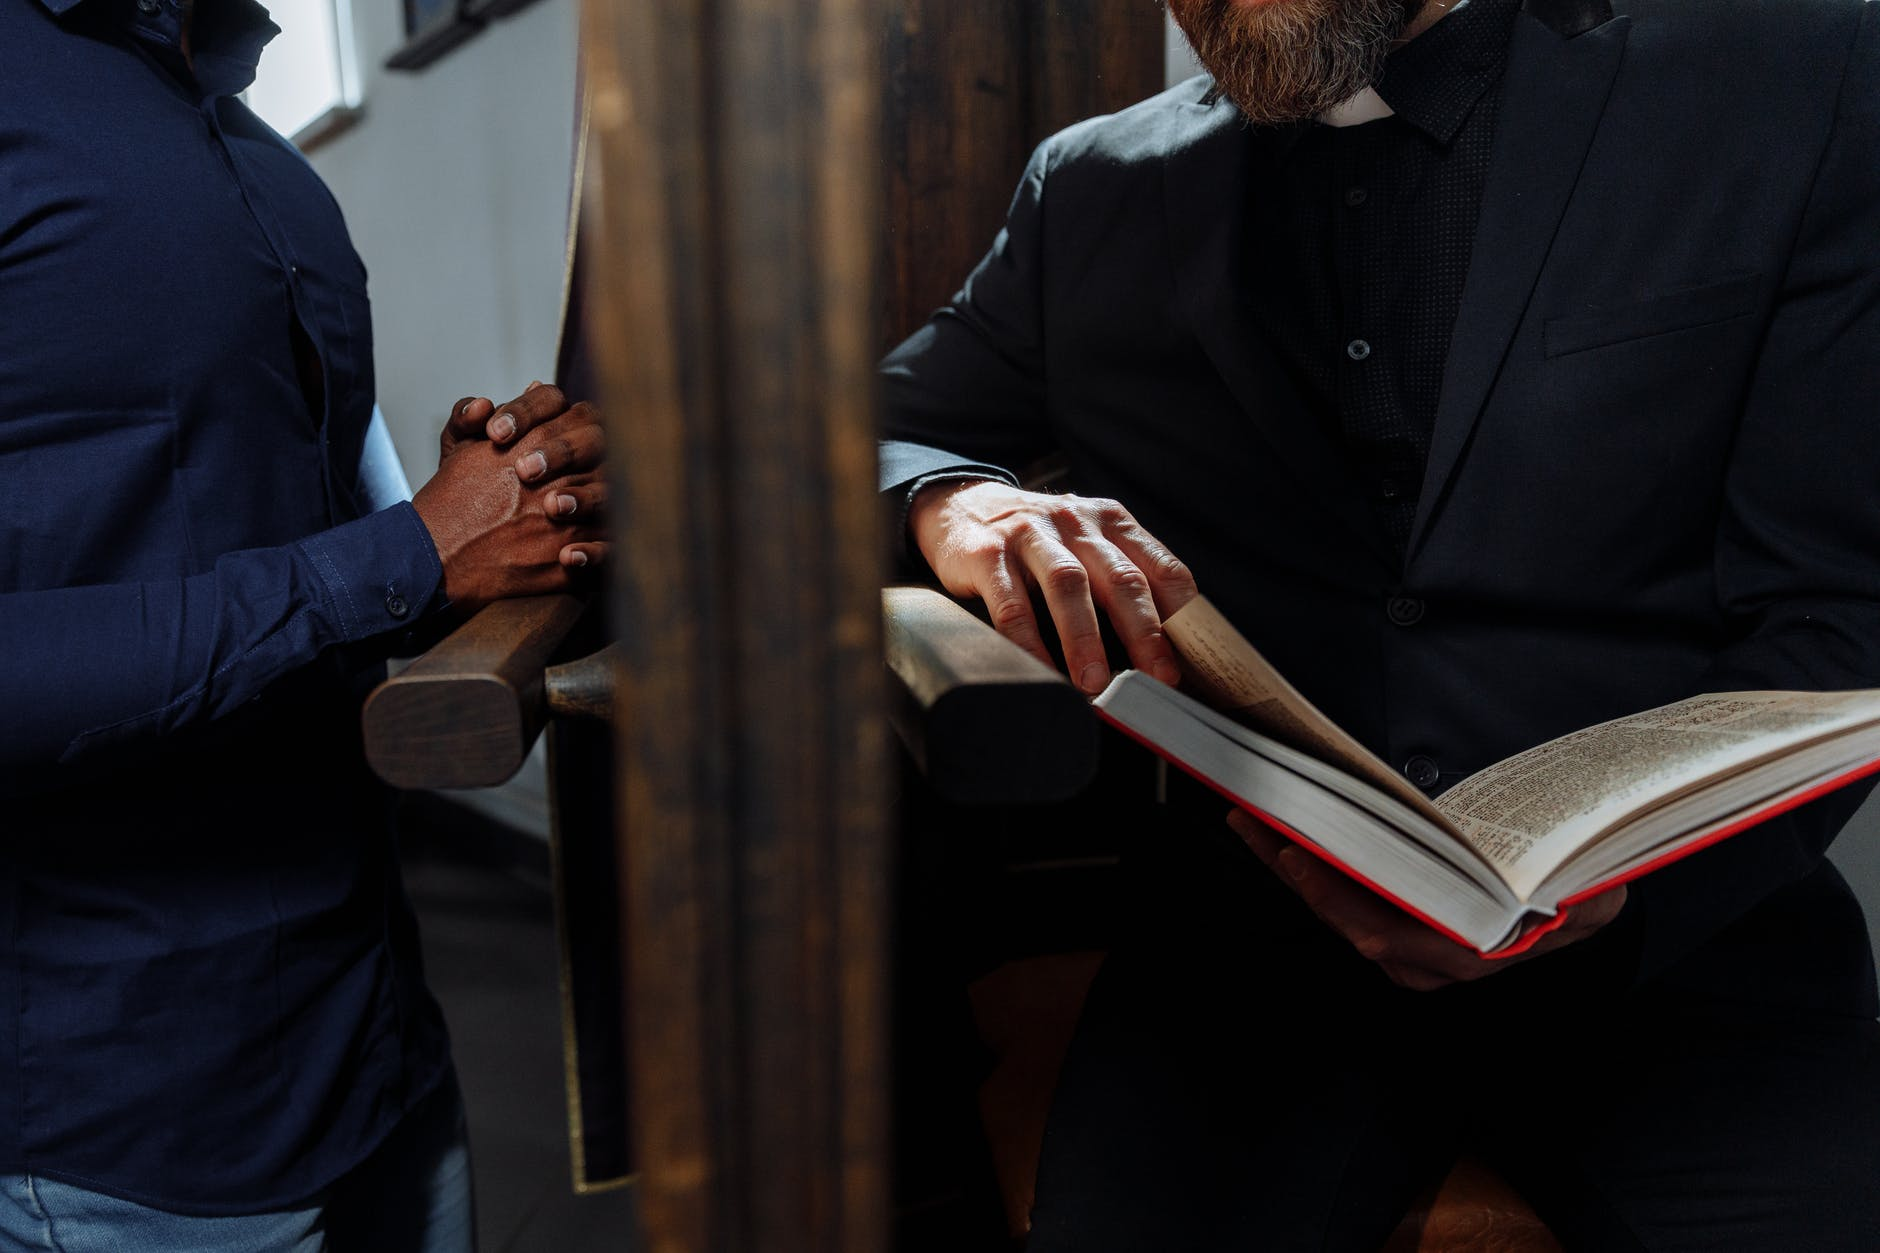 priest holding bible behind wooden wall while man confessing